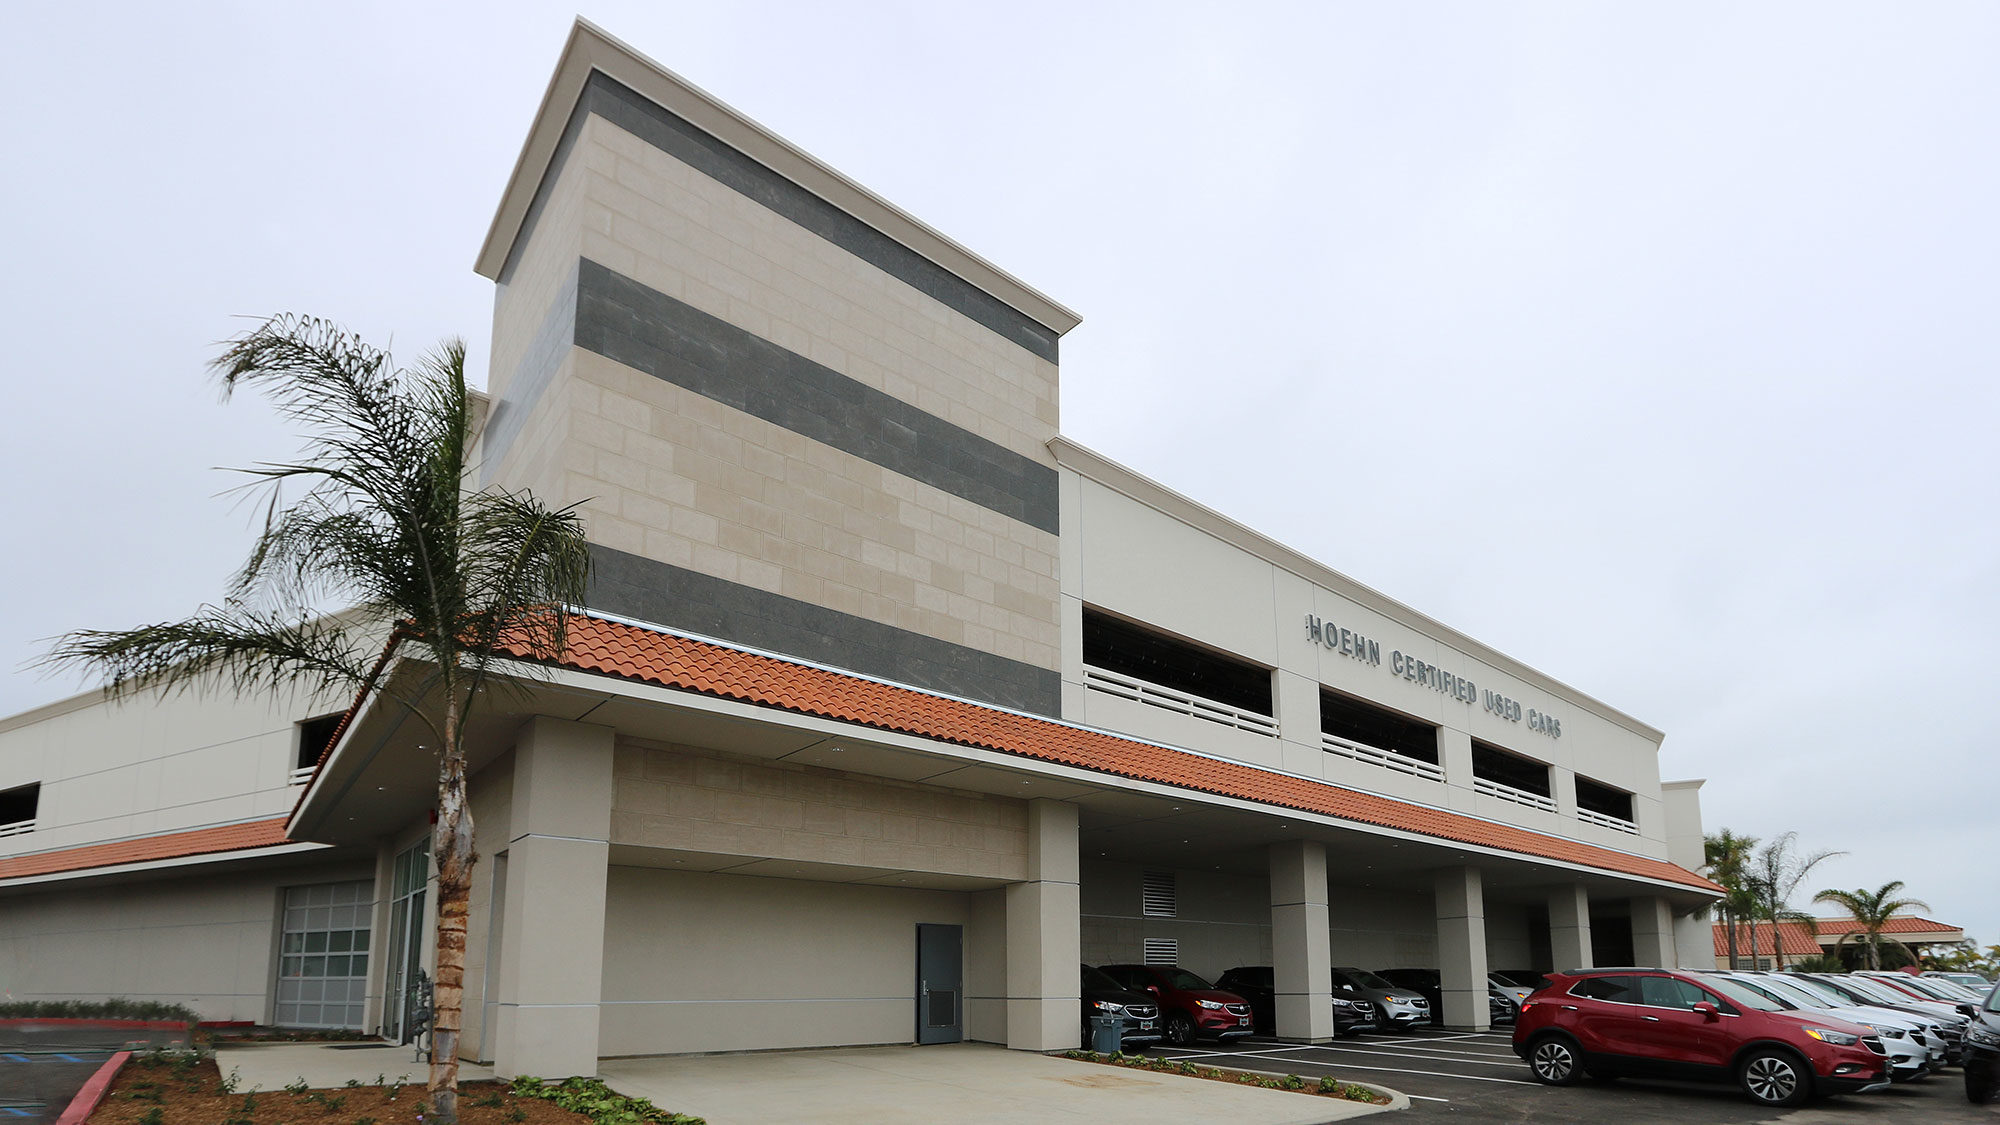 Hoehn Buick Cadillac Service and Parking, Carlsbad, CA